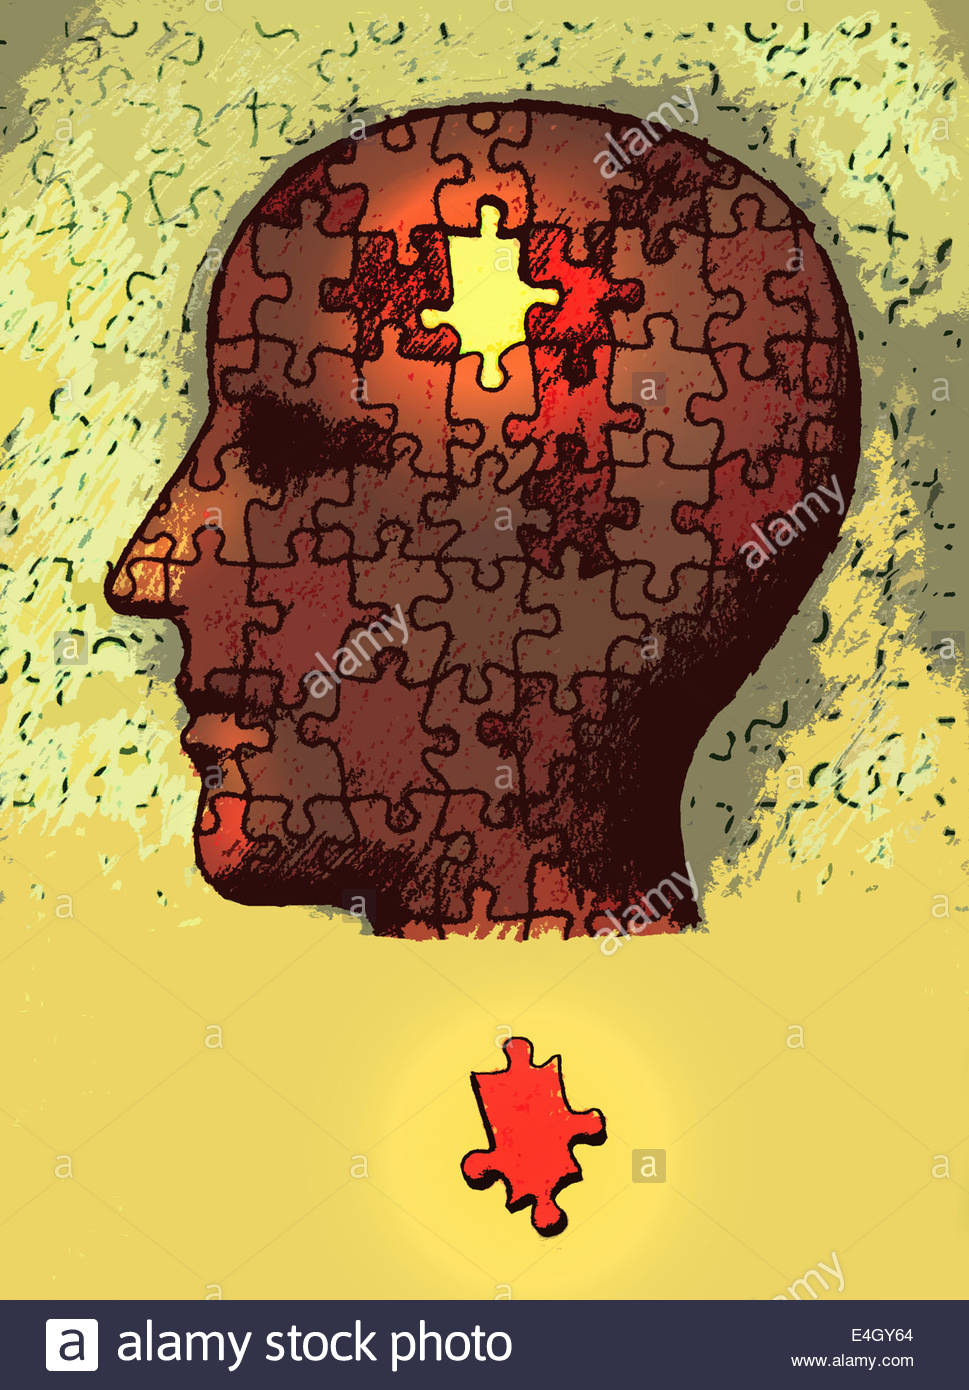 Missing jigsaw piece outside man's head - Stock Image